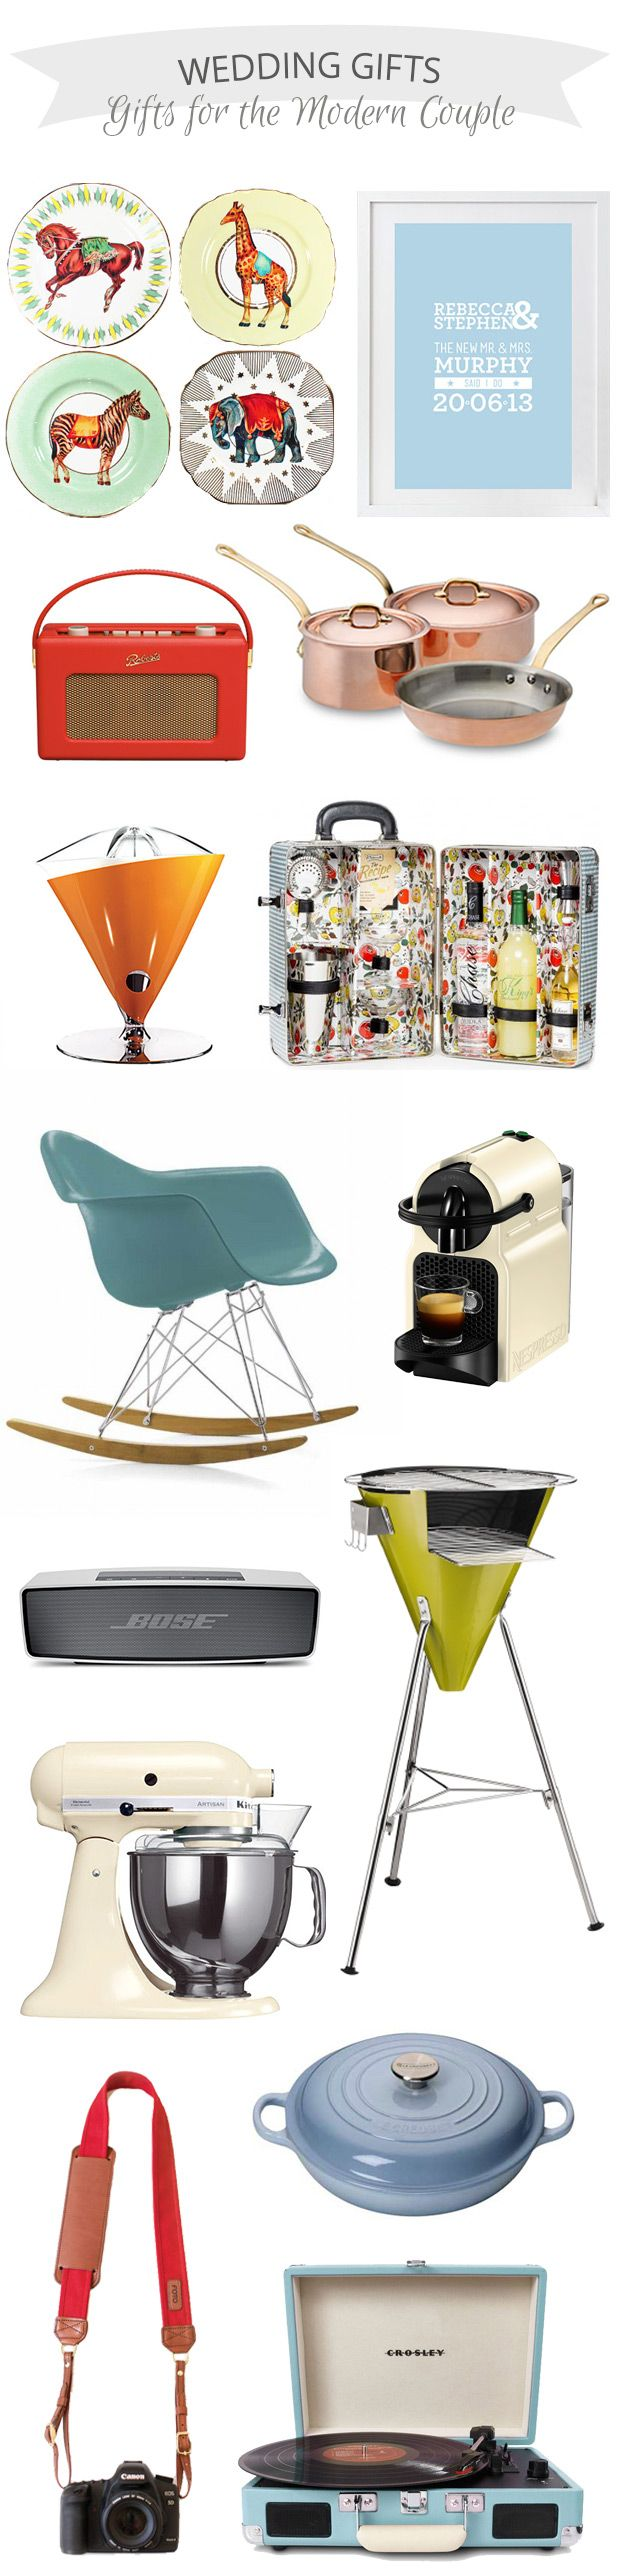 #Wedding #Gifts for the Modern Couple | www.onefabday.com